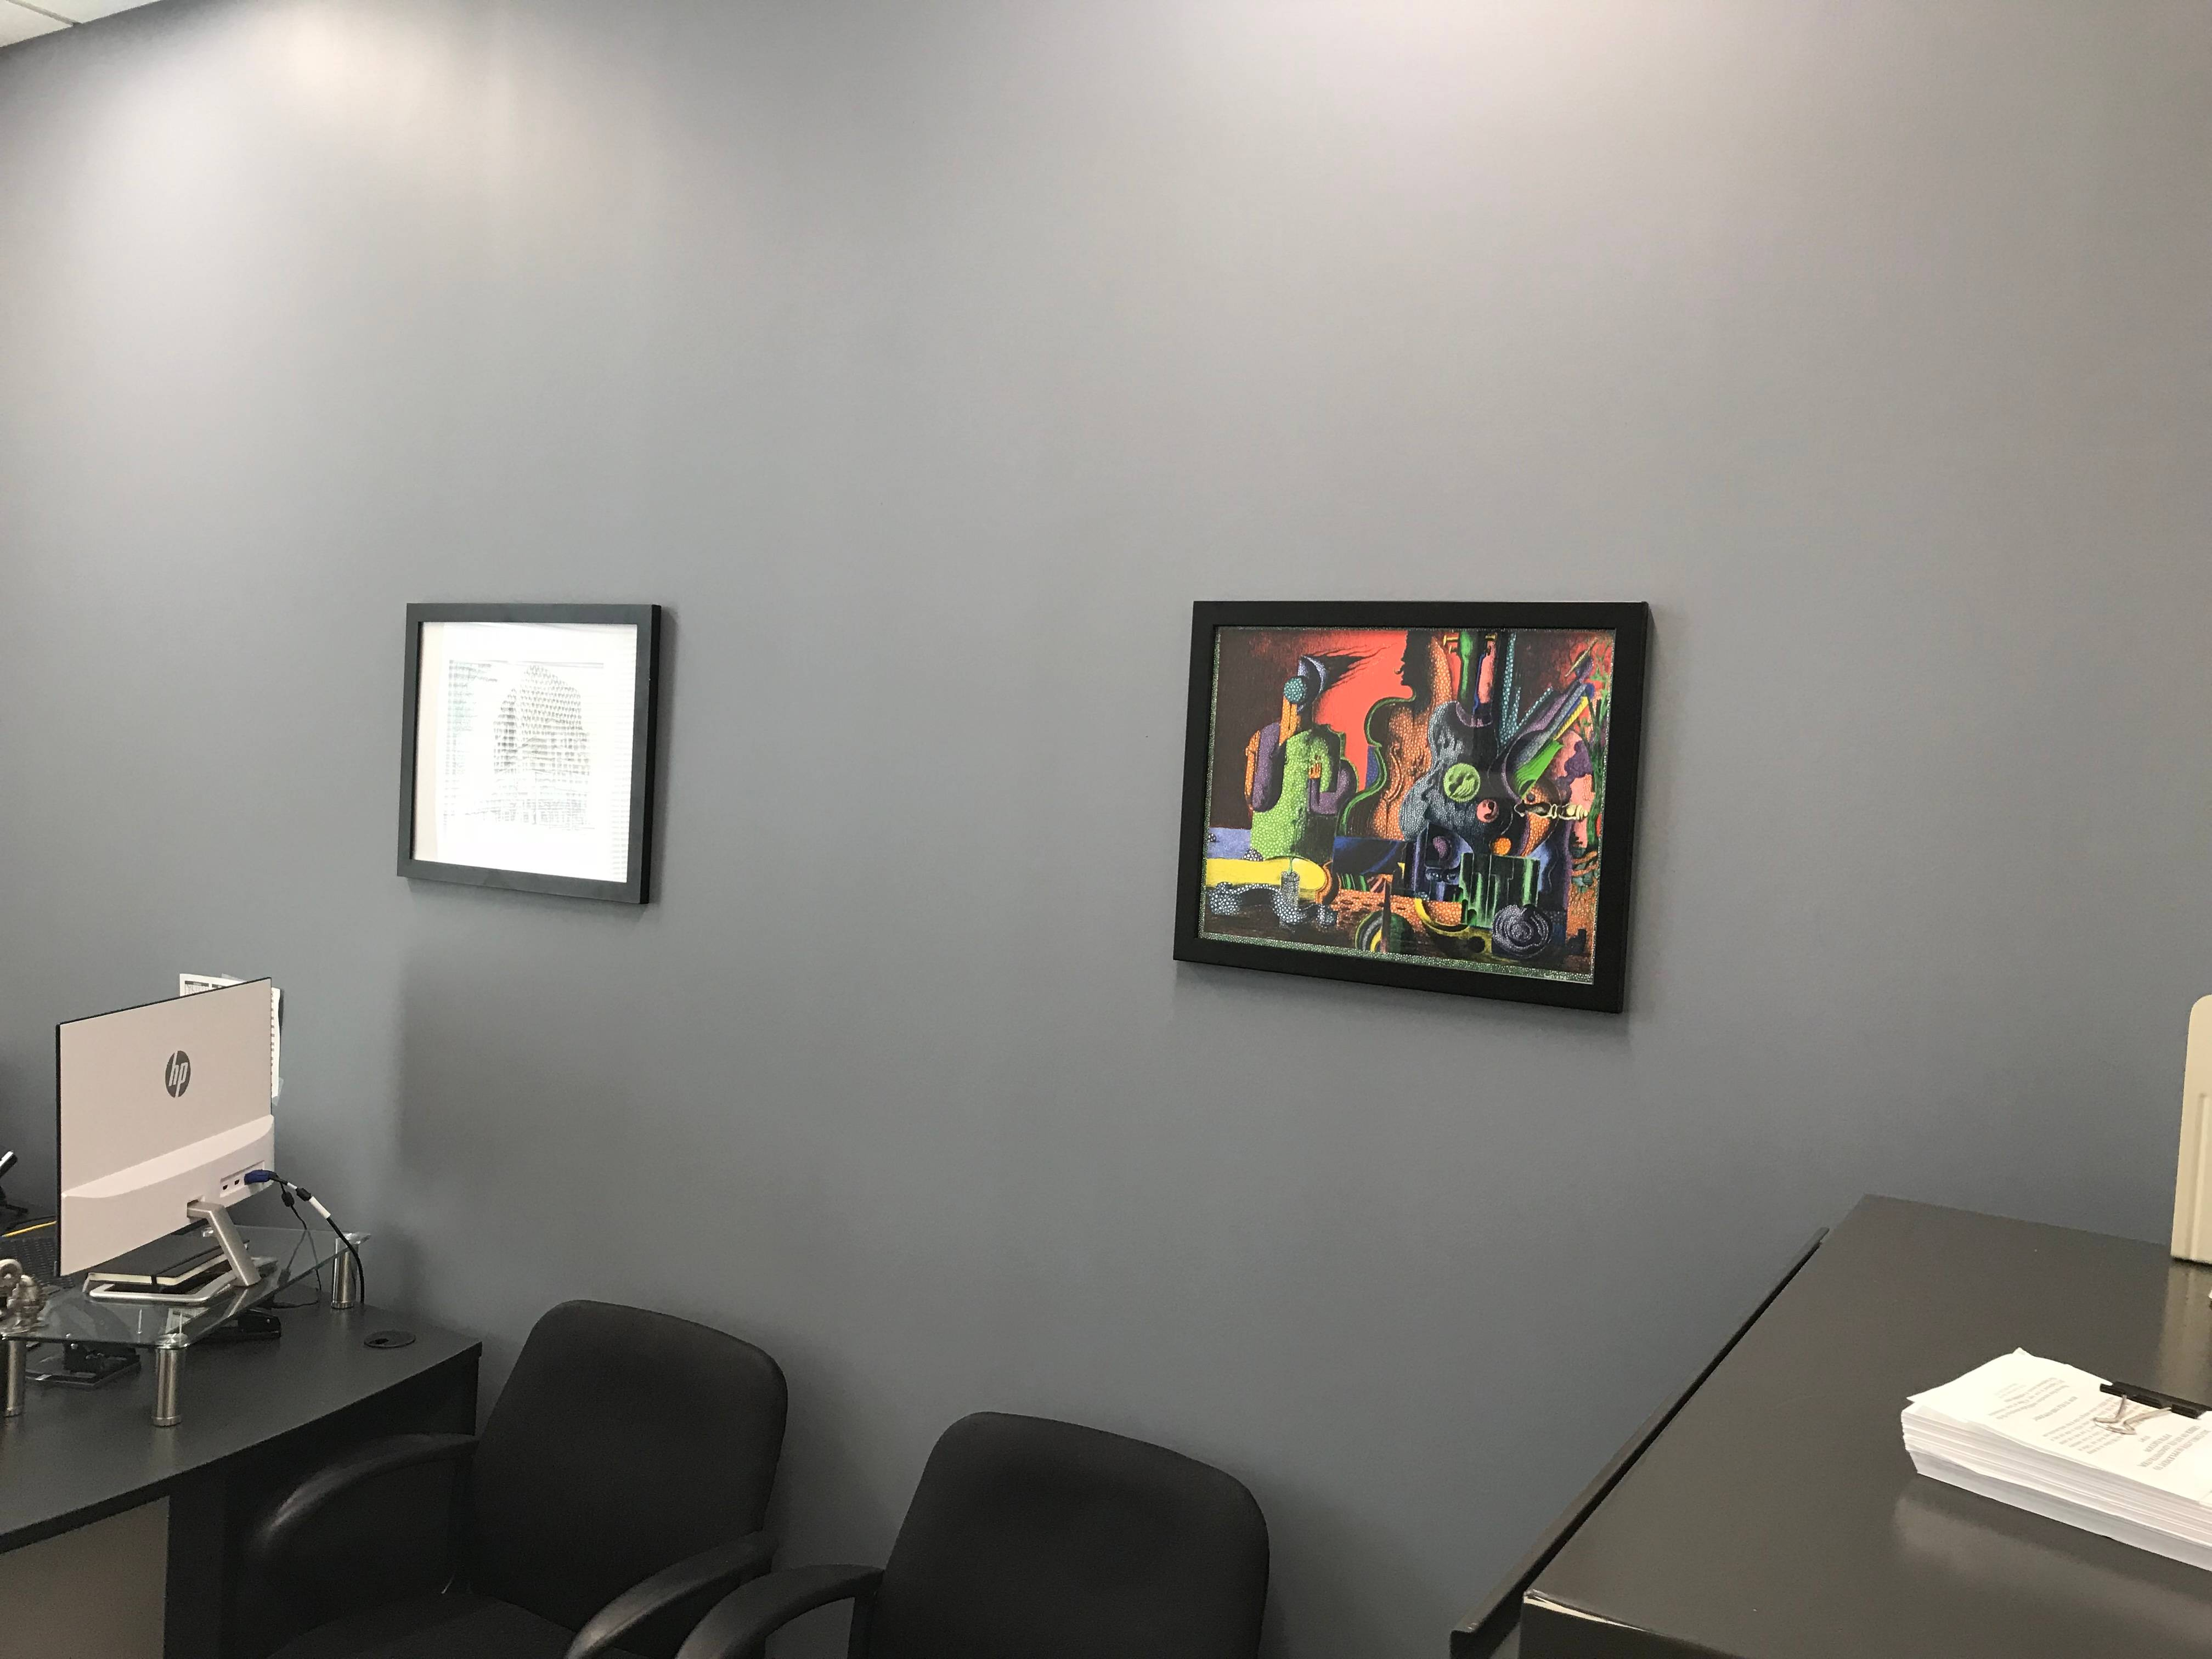 Picture hanging installation in drunkirk  MD